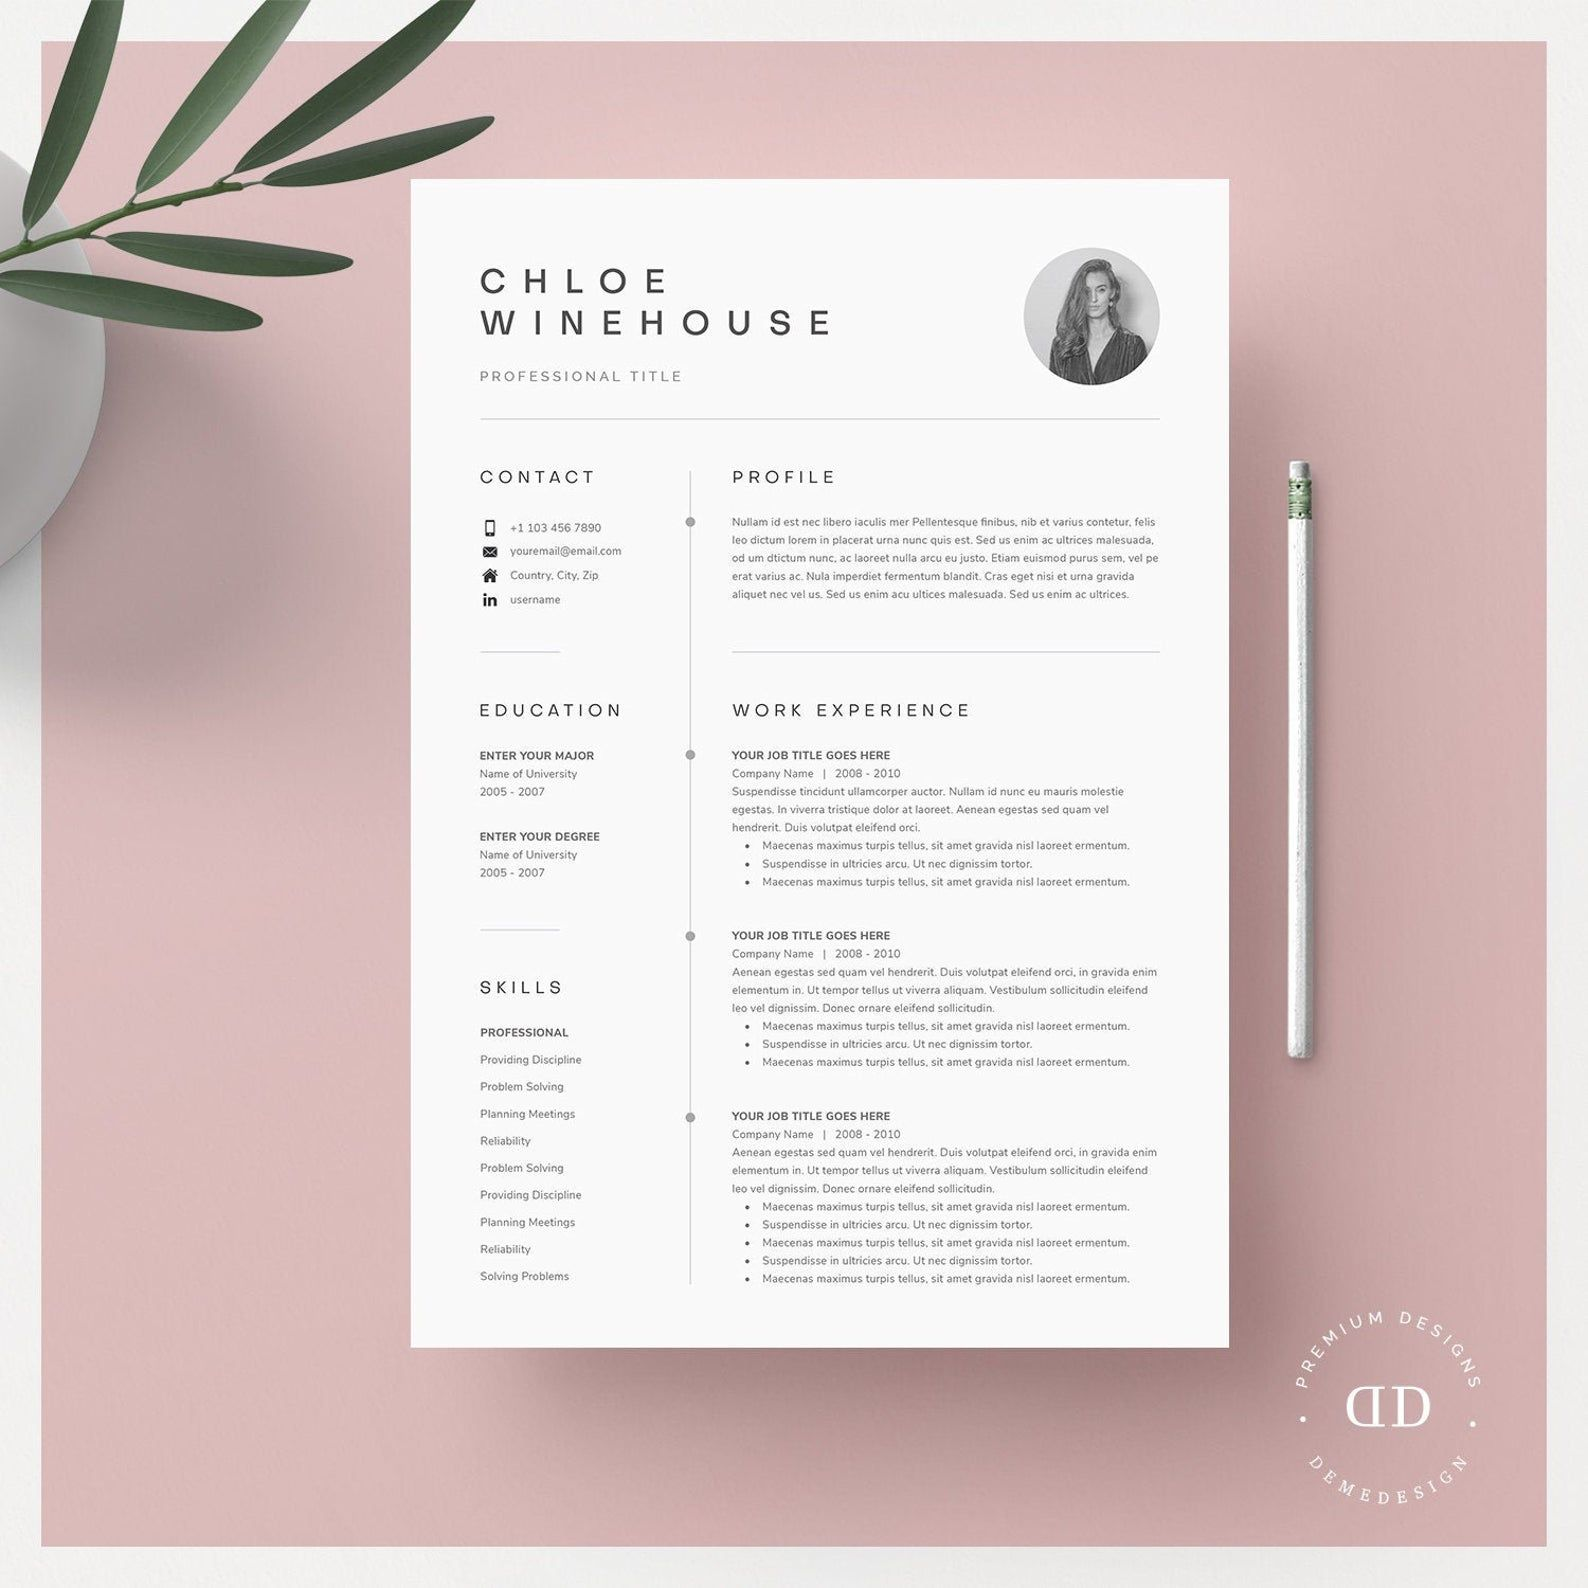 Sending A Cover Letter and Resume by Email Of Resume Template Resume Template Word Resume with Picture Cv Cv Template Resume with Cover Letter Professional Resume Template Resume